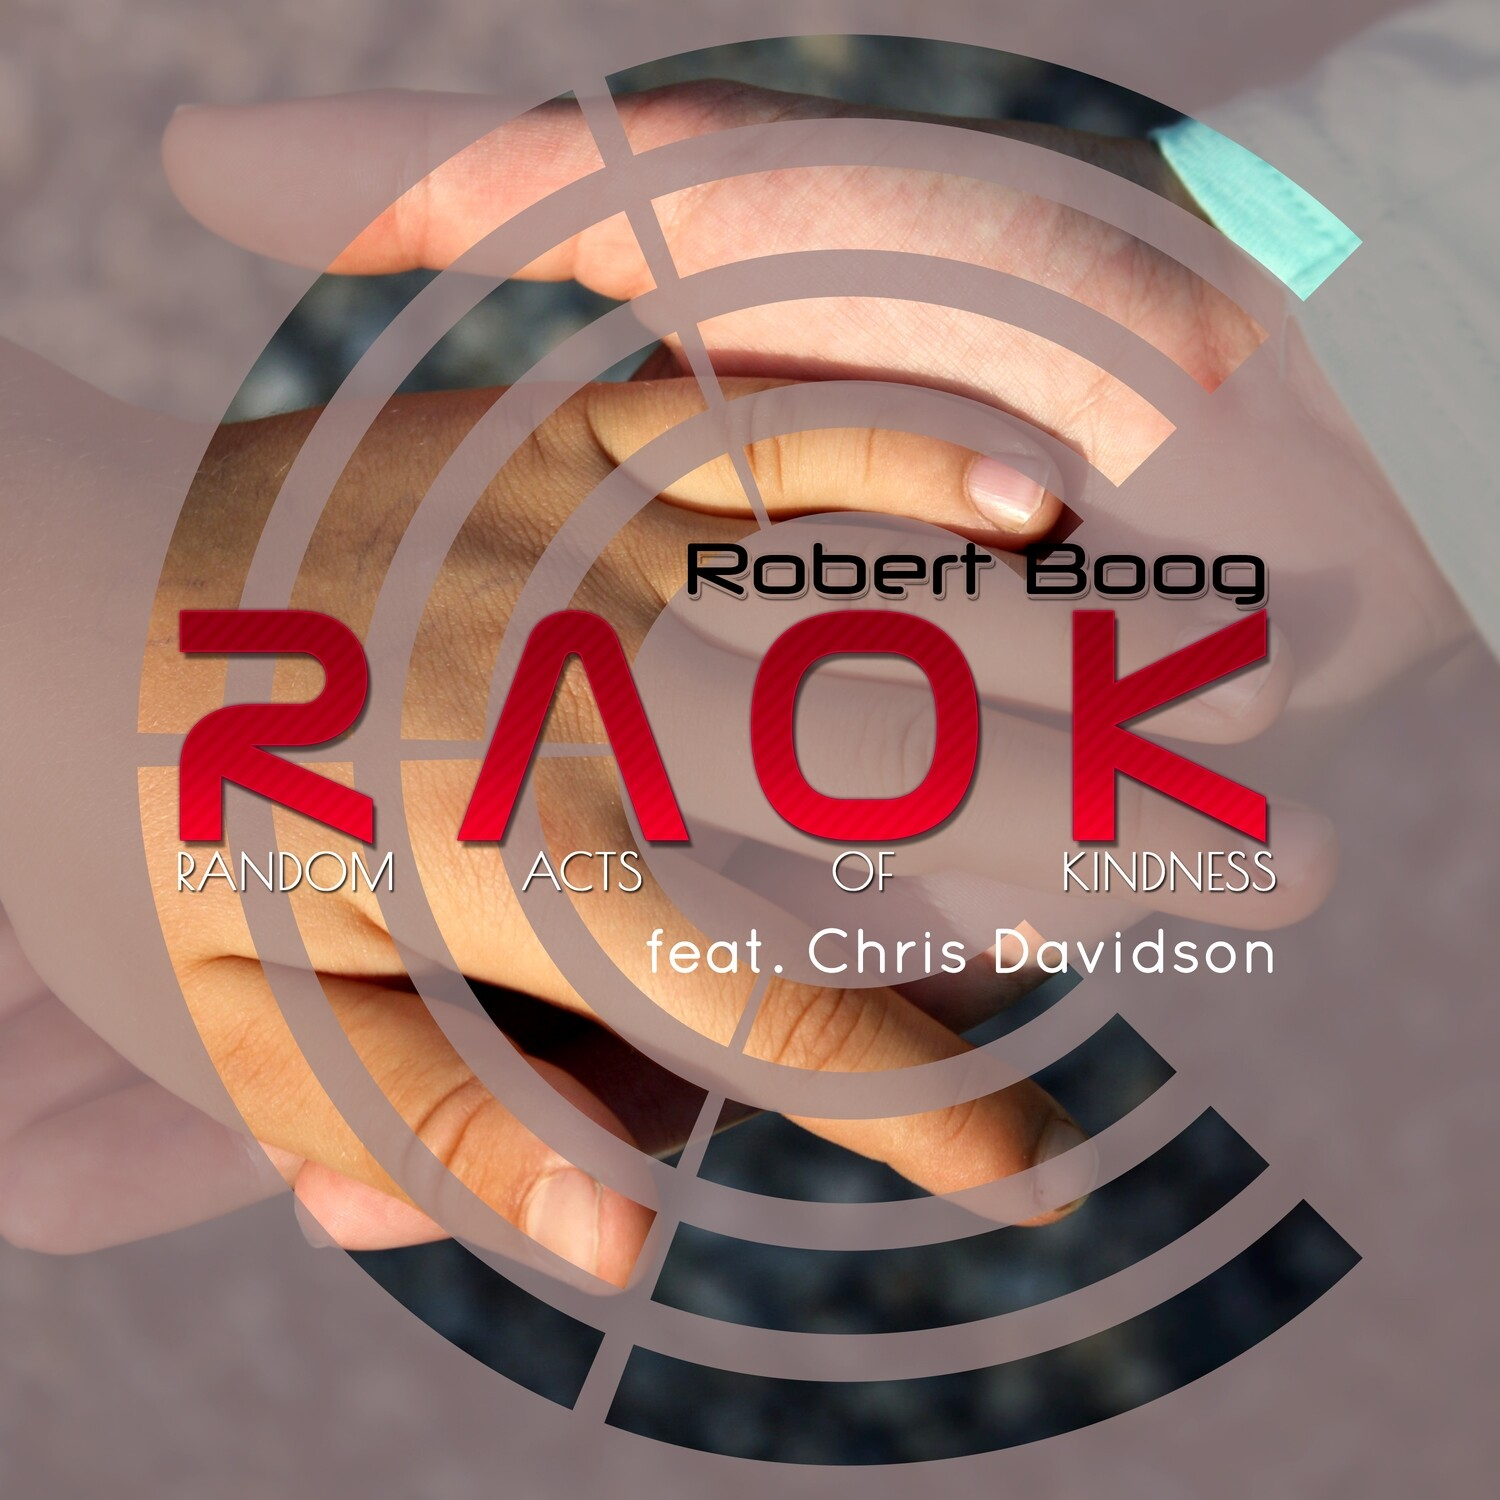 RAOK song (random acts of kindness